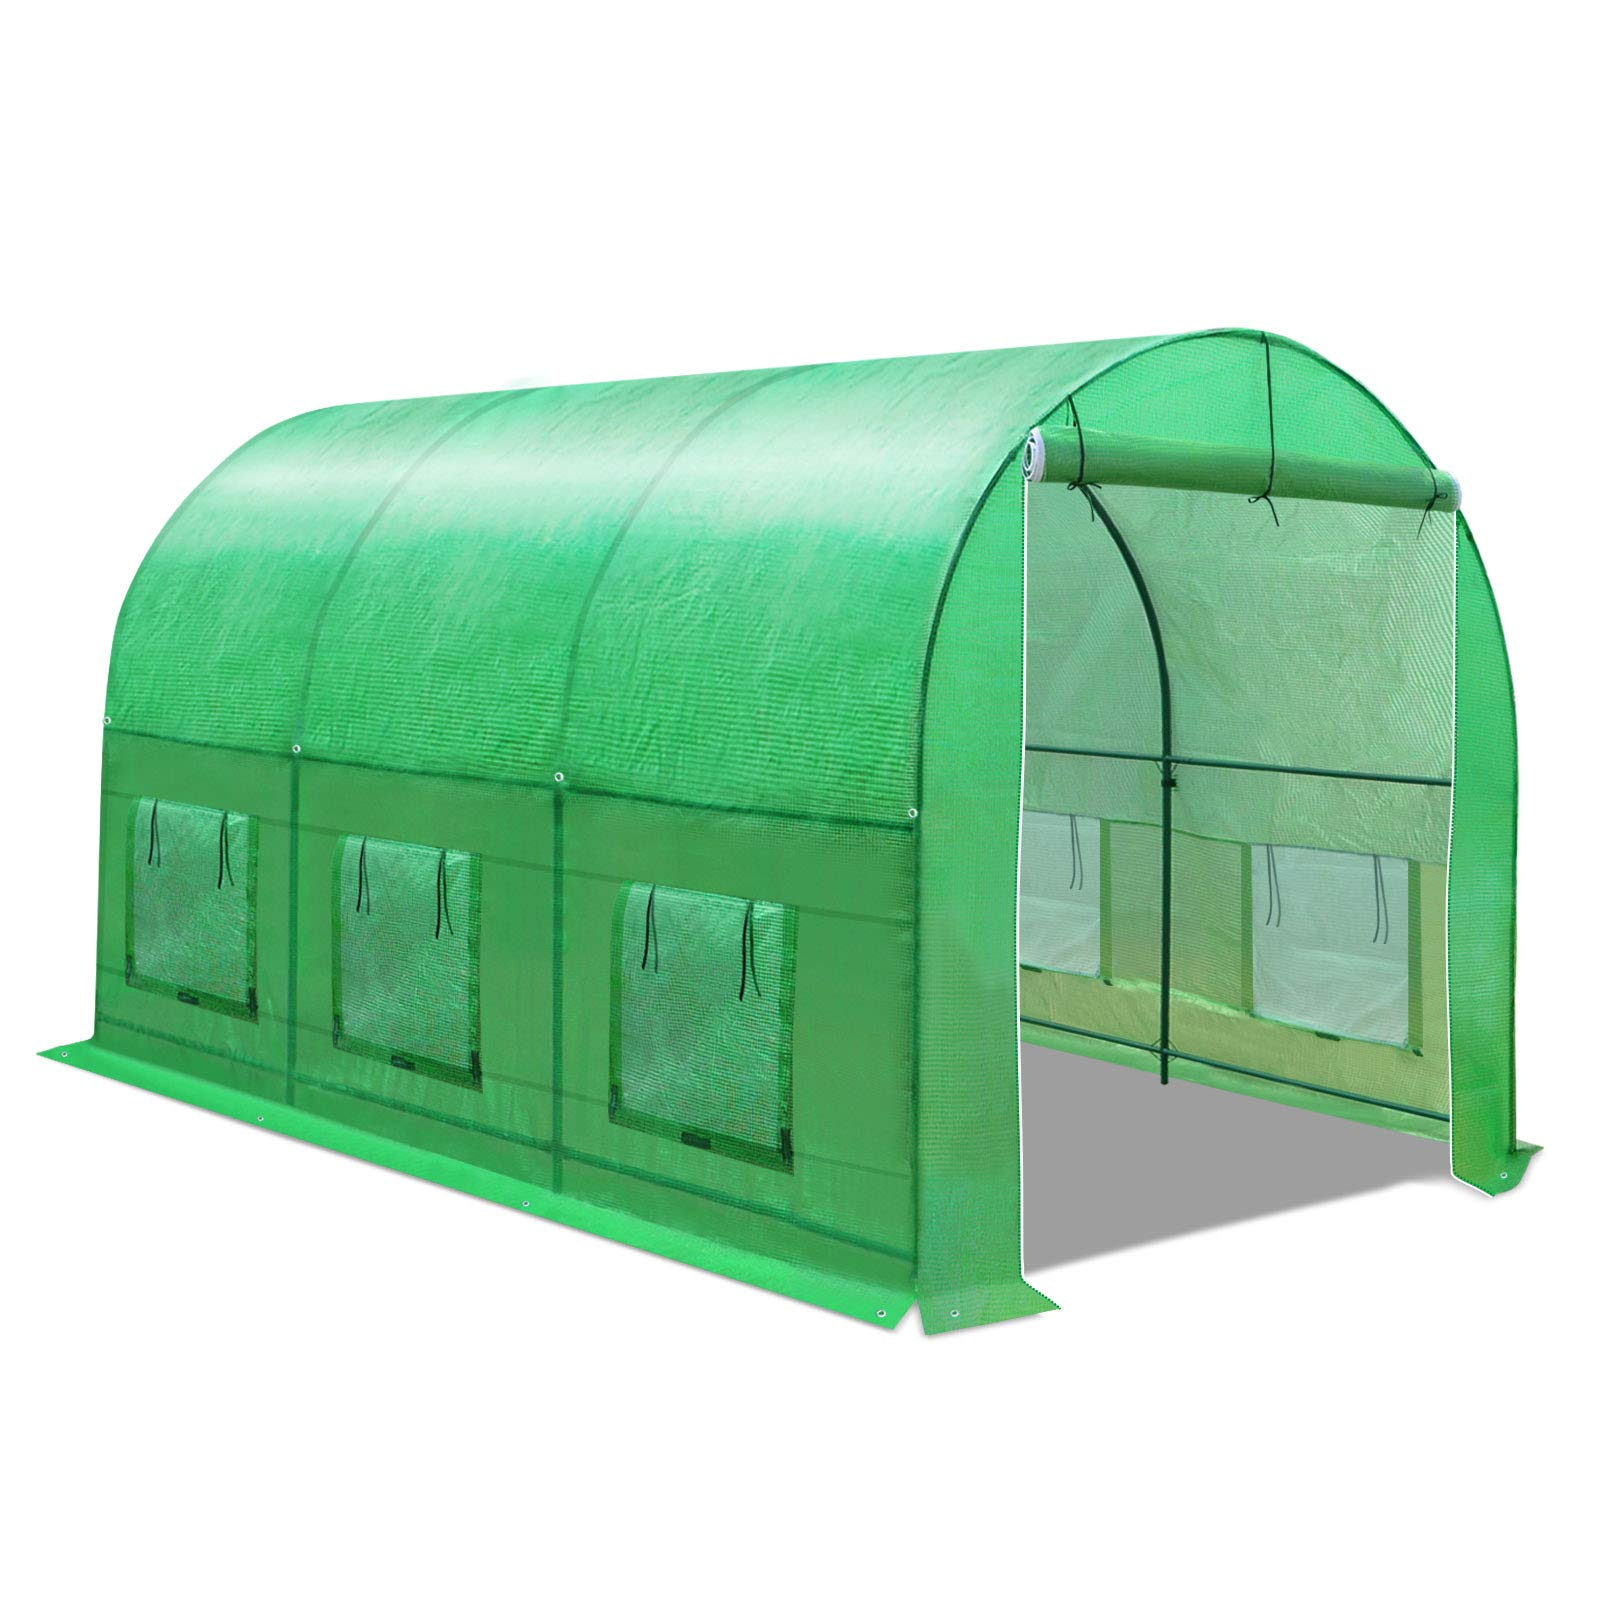 BenefitUSA Multiple Size Large Greenhouse Walk in Outdoor Plant Gardening Hot Greenhouse (12'x7'x7')